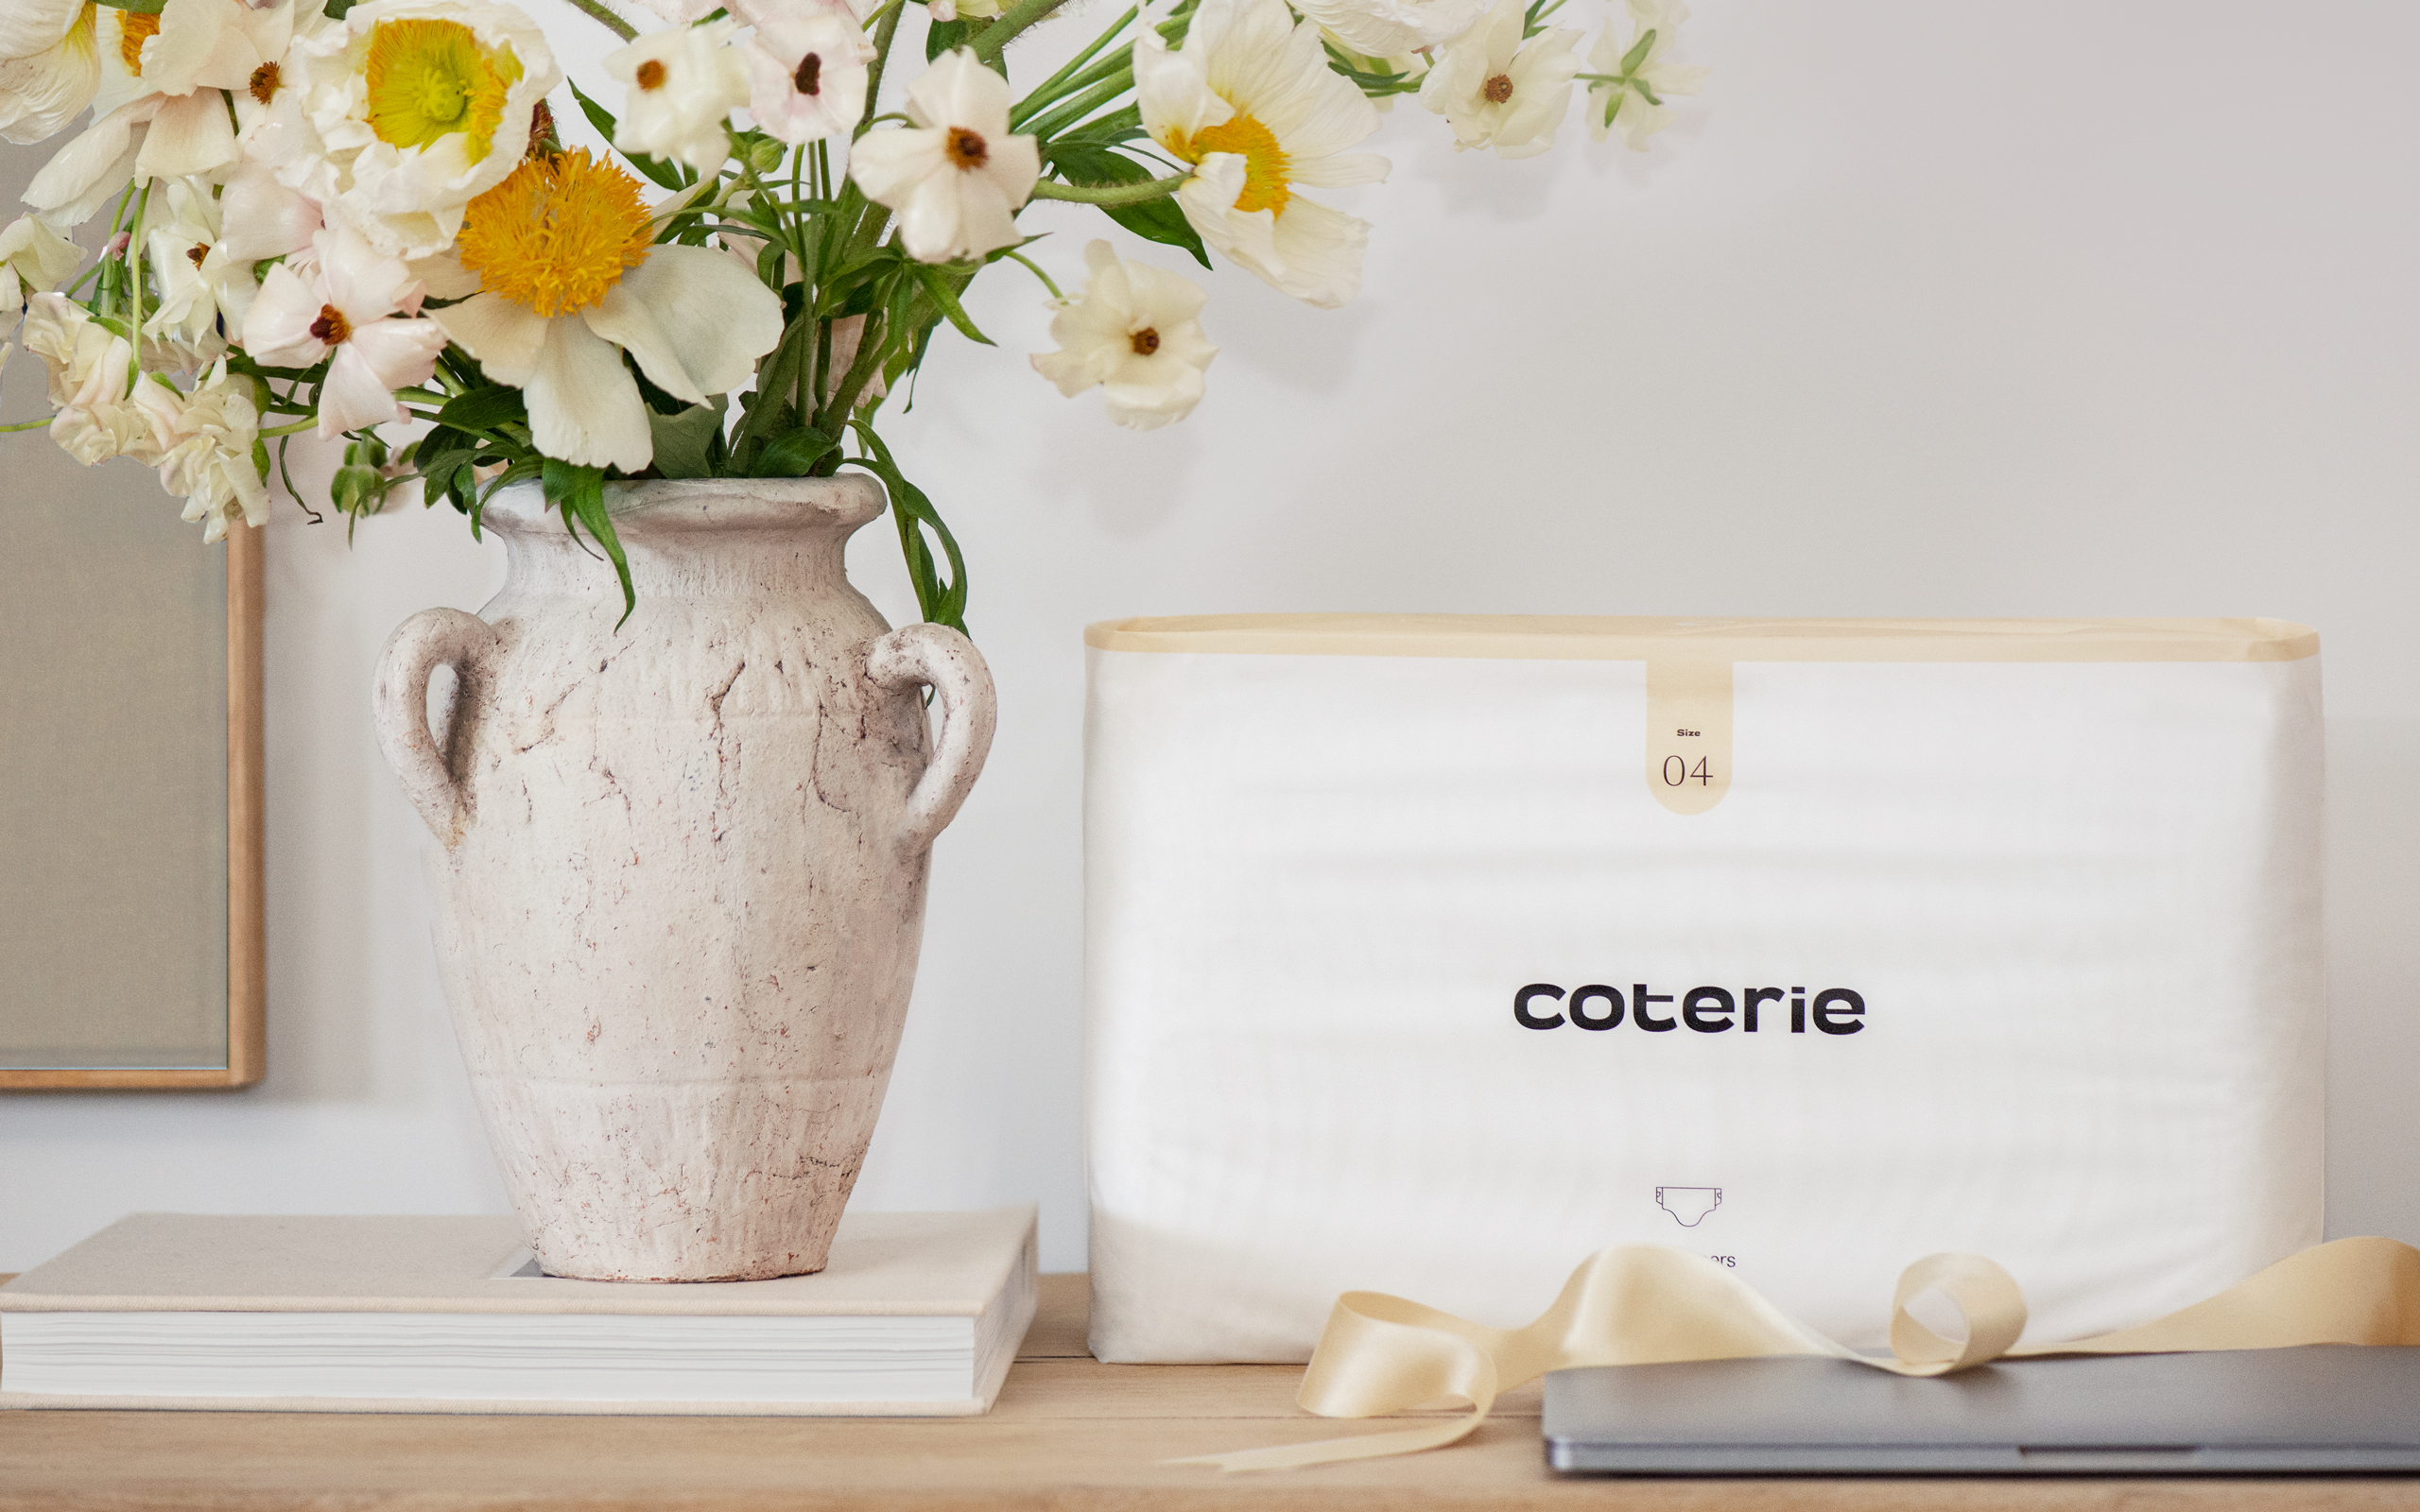 A pack of Coterie diapers next to a vase of flowers